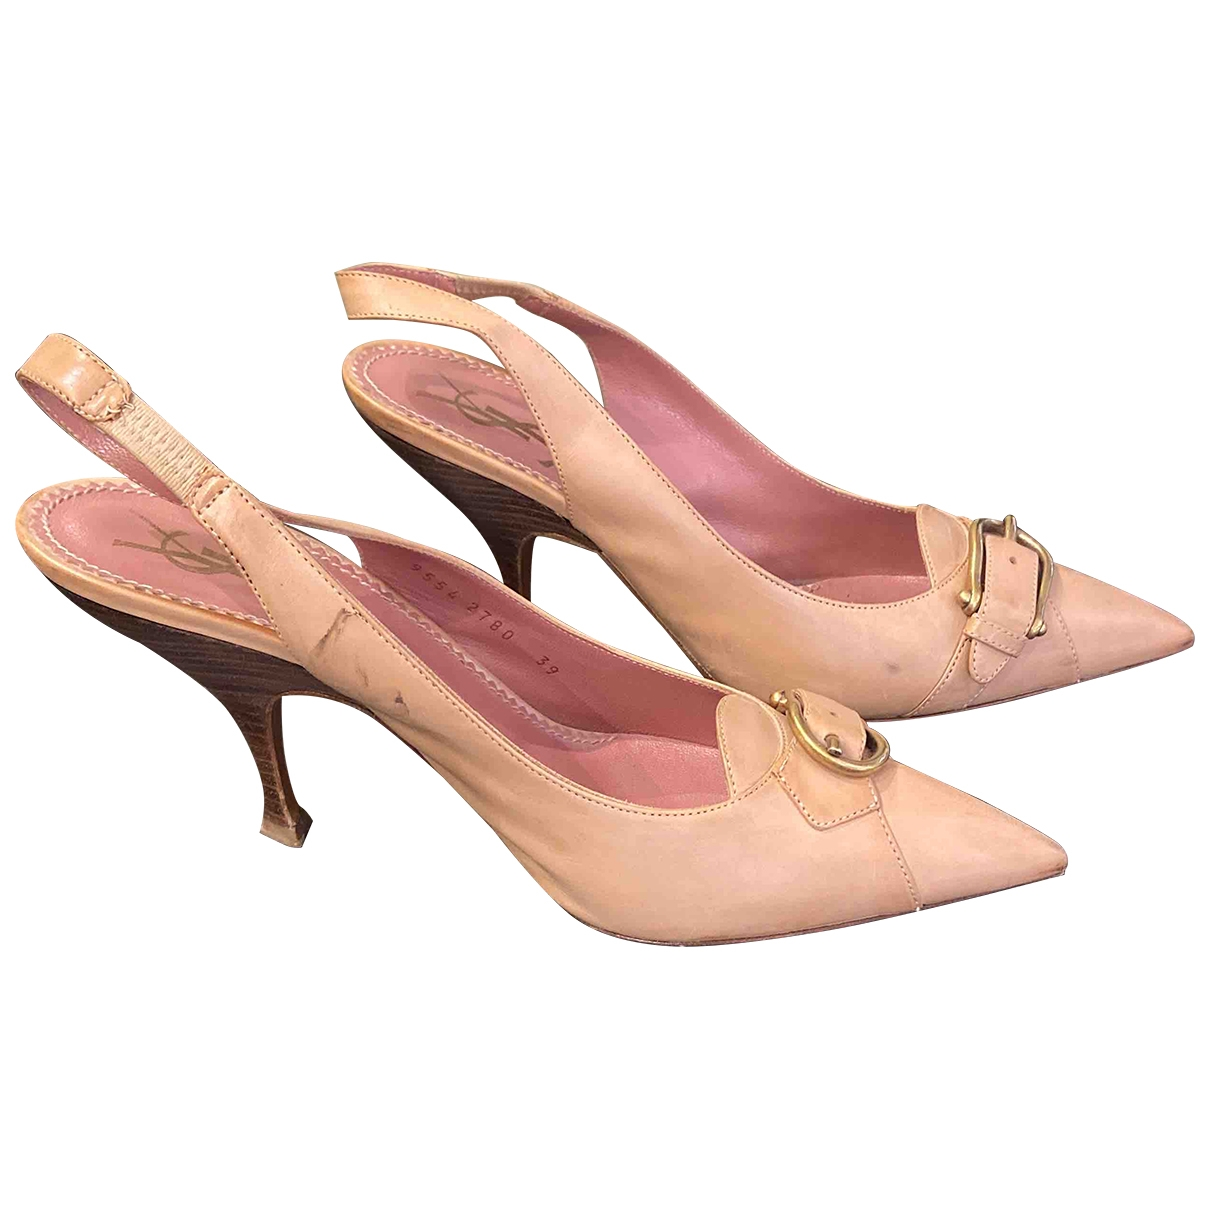 Yves Saint Laurent \N Pumps in  Beige Leder